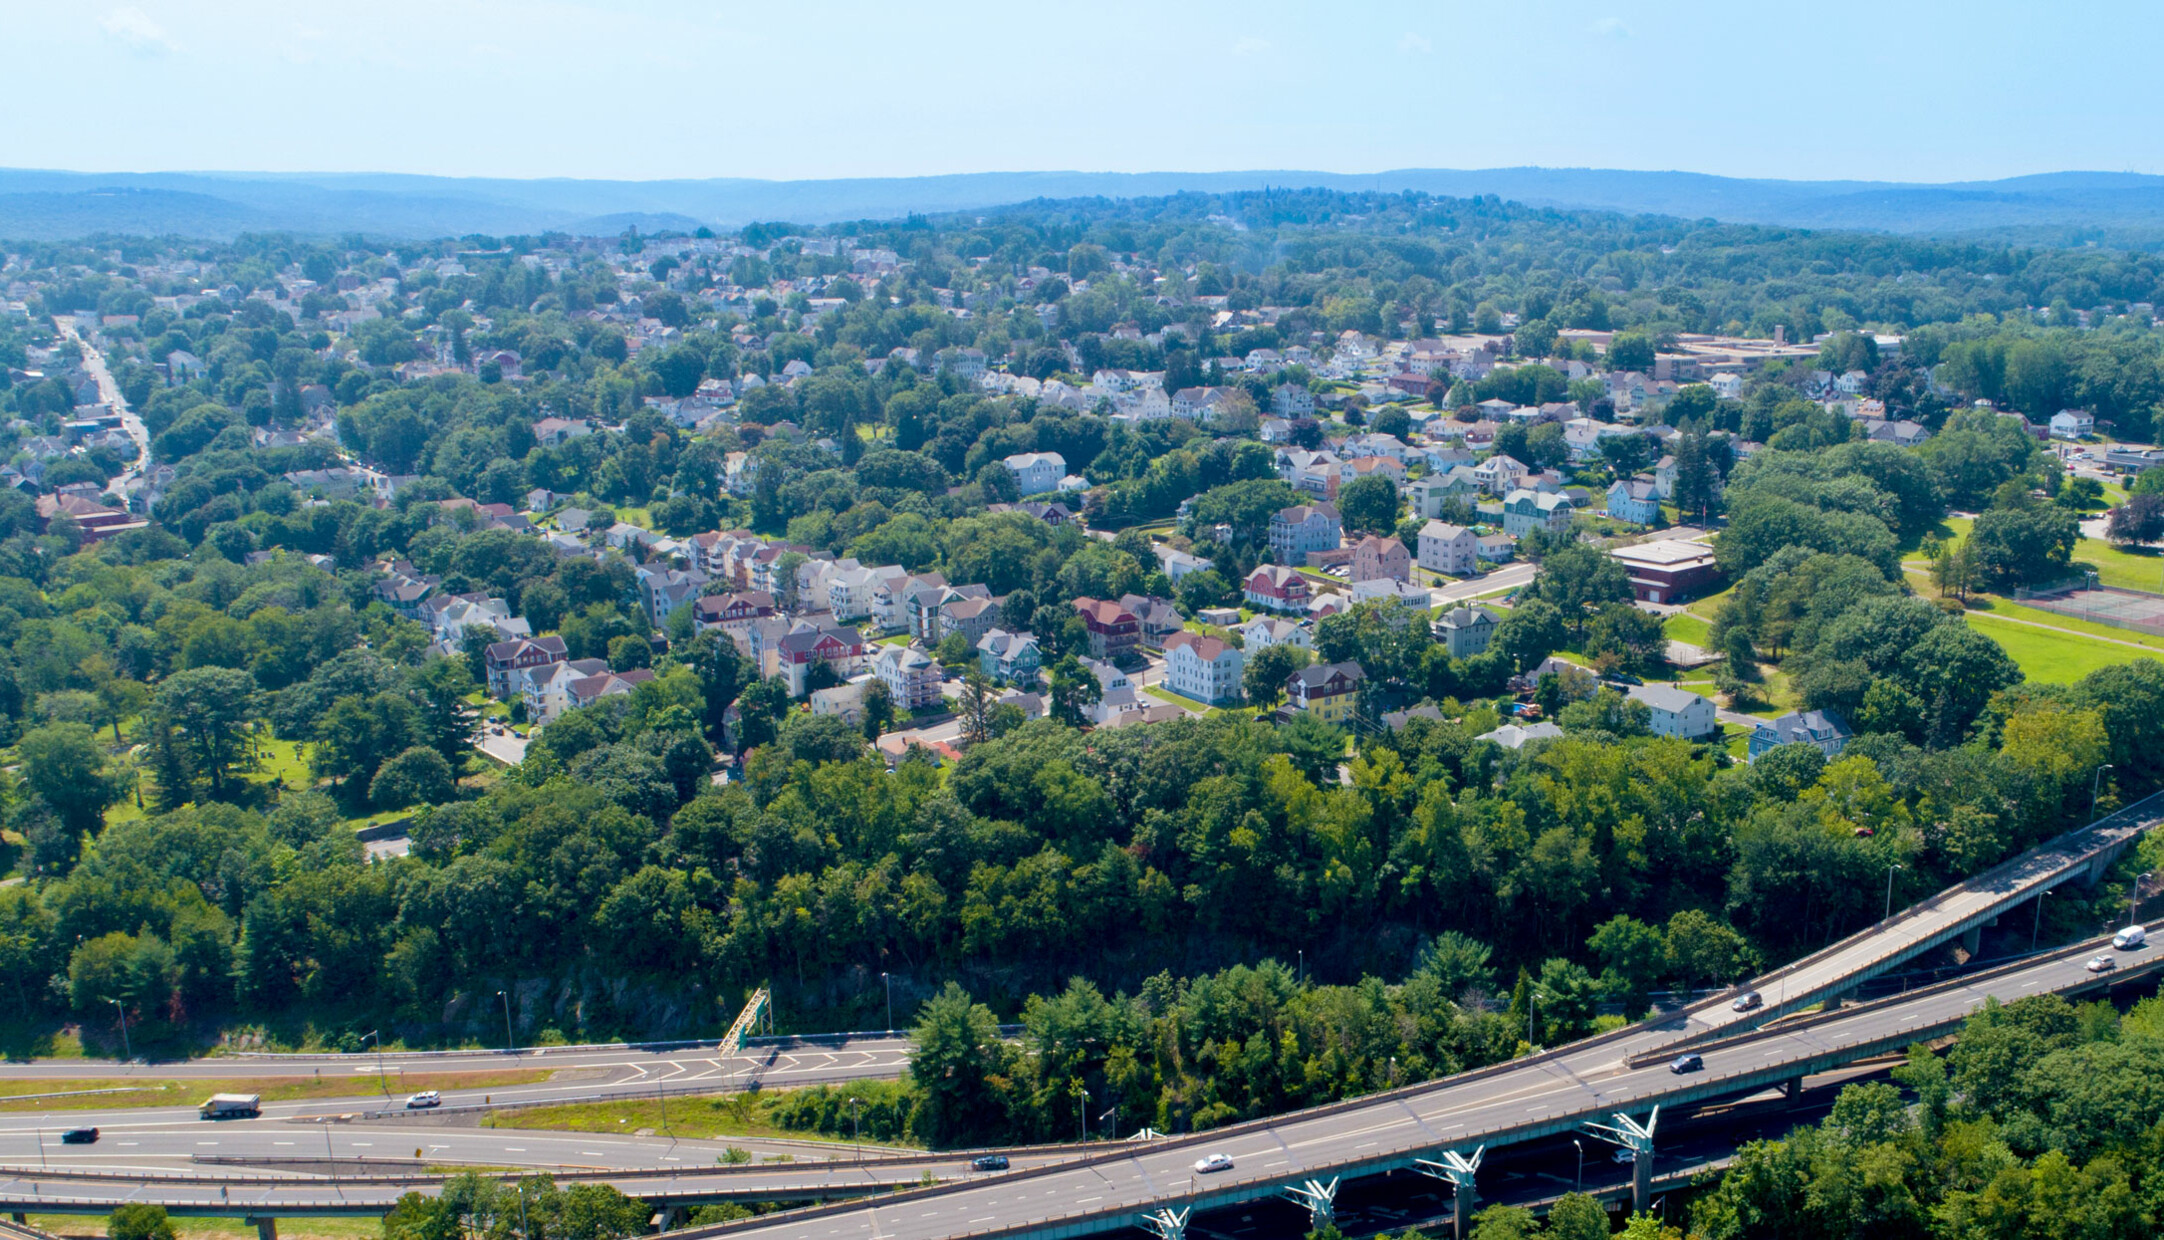 An aerial view of houses and streets in the Town Plot neighborhood in Waterbury